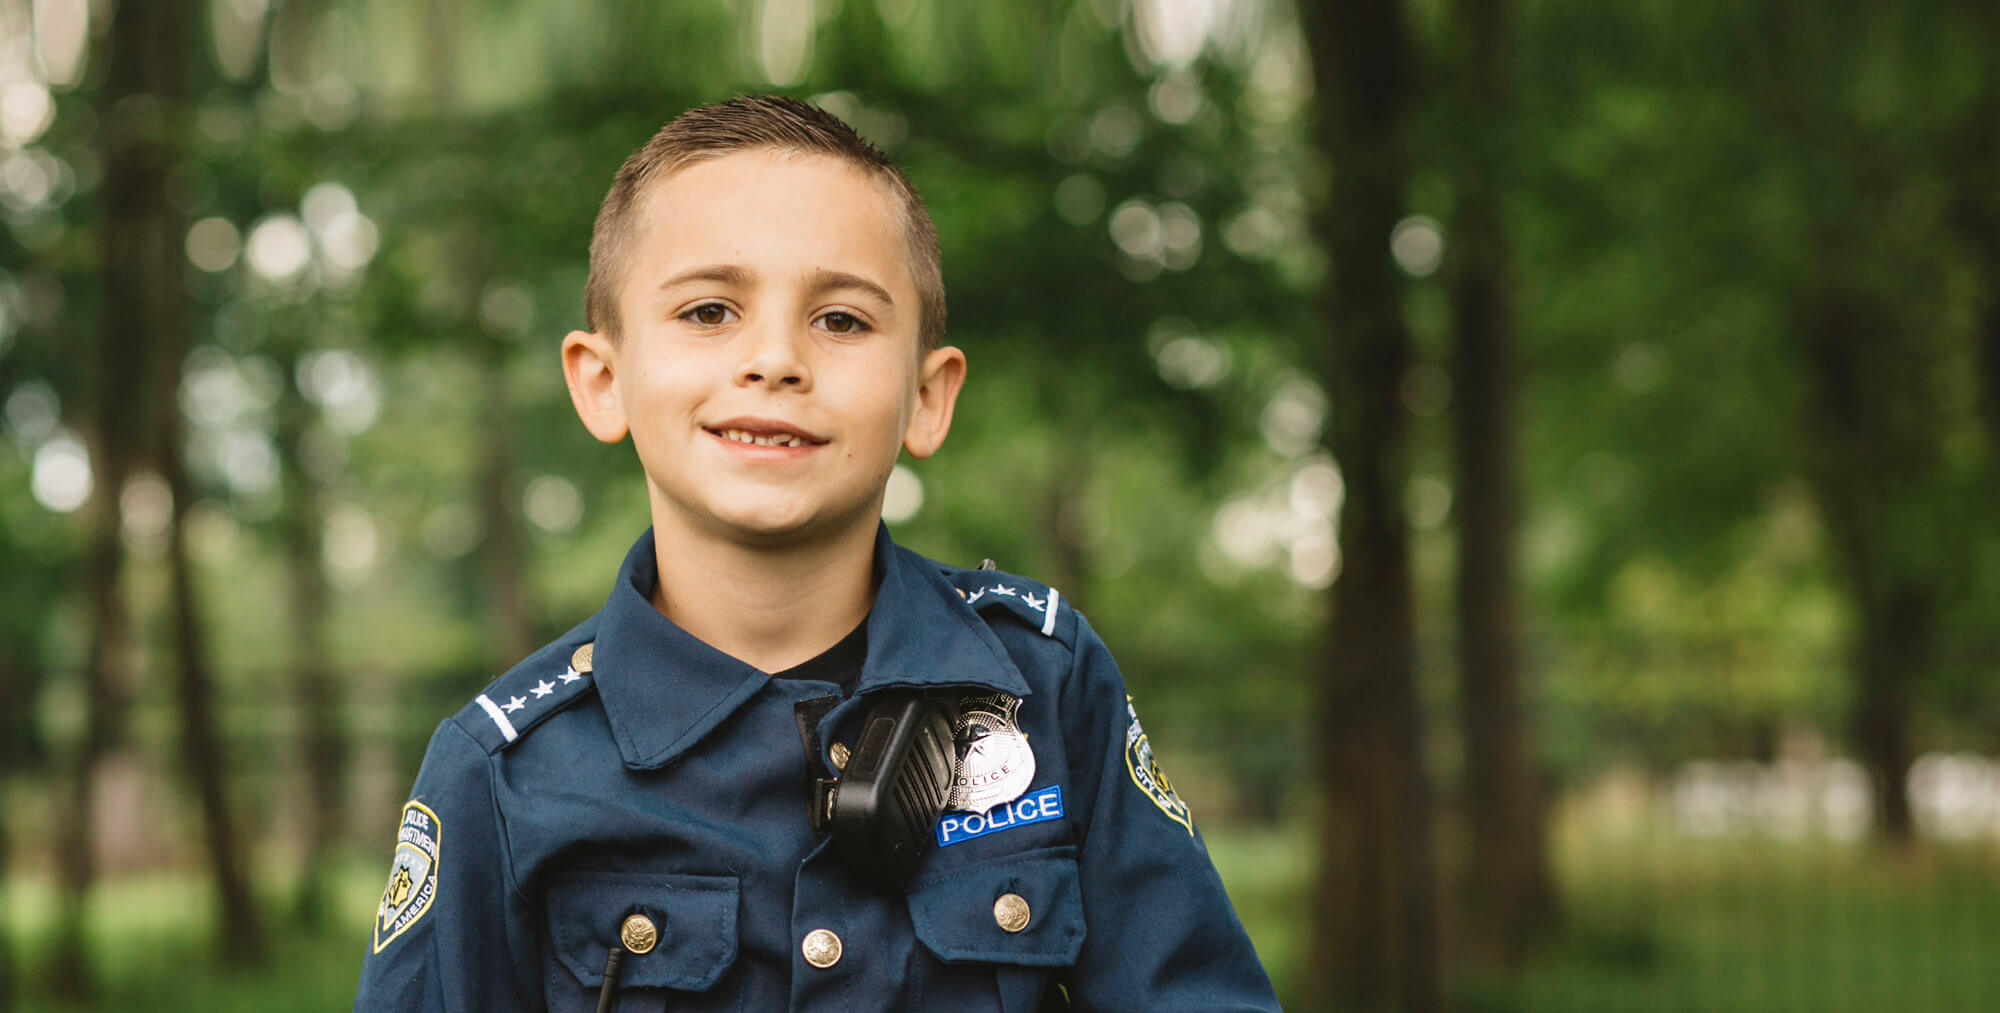 Little boy wearing a police costume and smiling